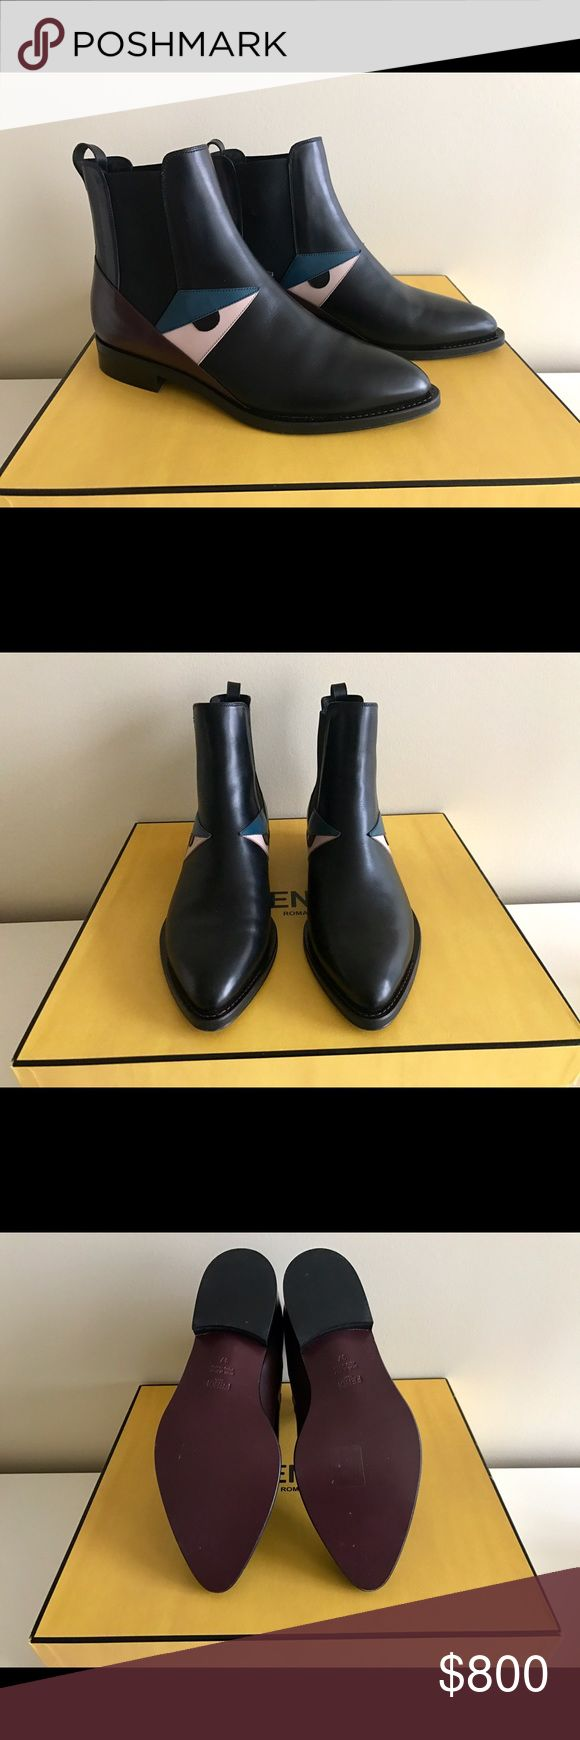 """Fendi Bug Monster Chelsea Boots Brand new in box with dust bags. Size 37. 1"""" heel, 5"""" boot shaft. Classic Chelsea boots with famous Fendi monster motif. Fendi Shoes Ankle Boots & Booties"""